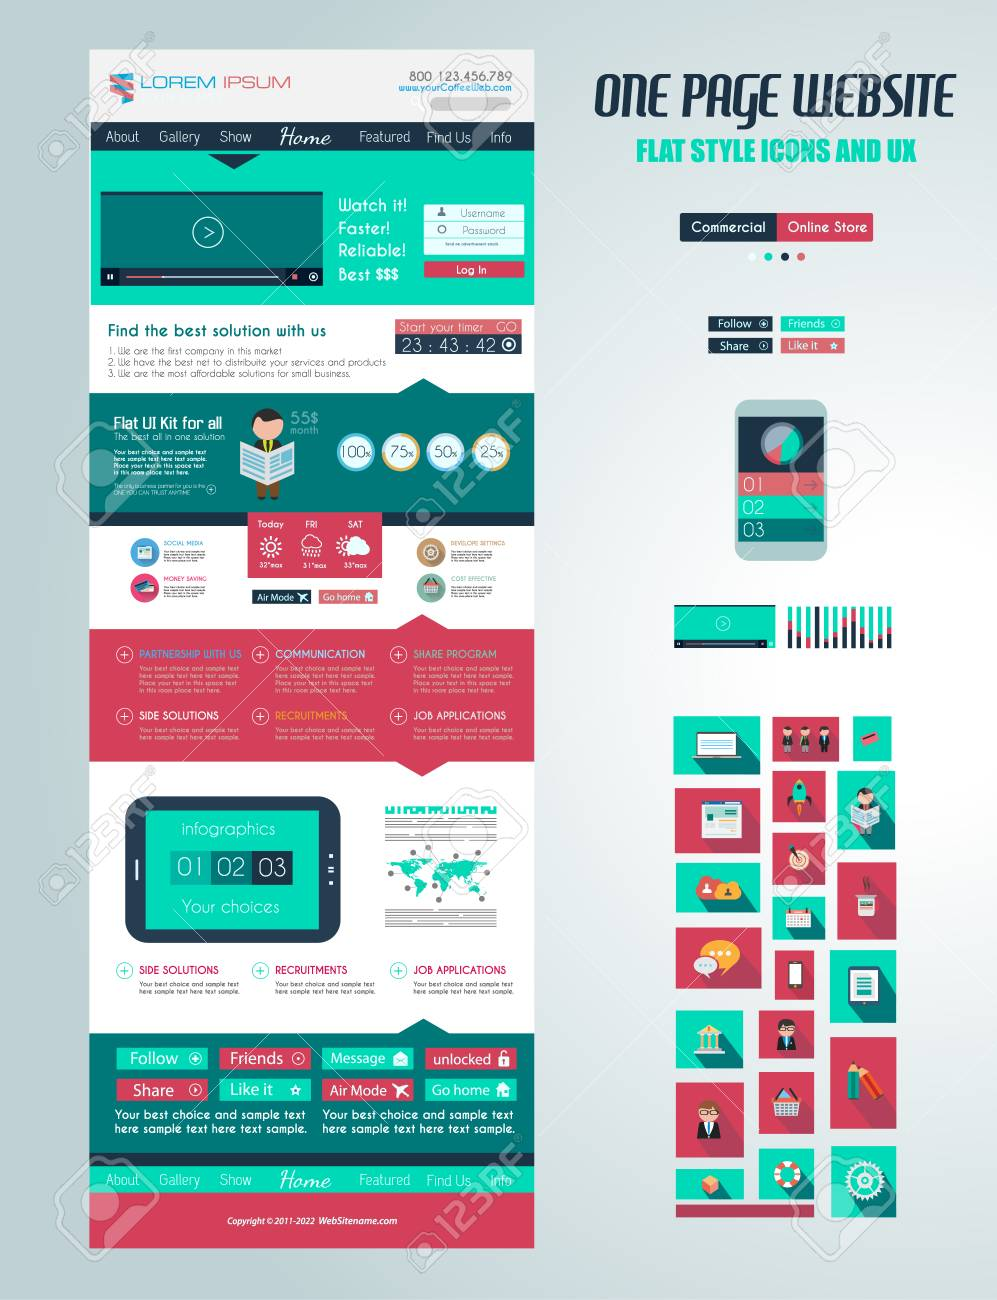 One page website flat UI design template. It include a lot of flat stlyle icons, forms, header, footeer, menu, banner and spaces for pictures and icons all in one page. Stock Vector - 29229757